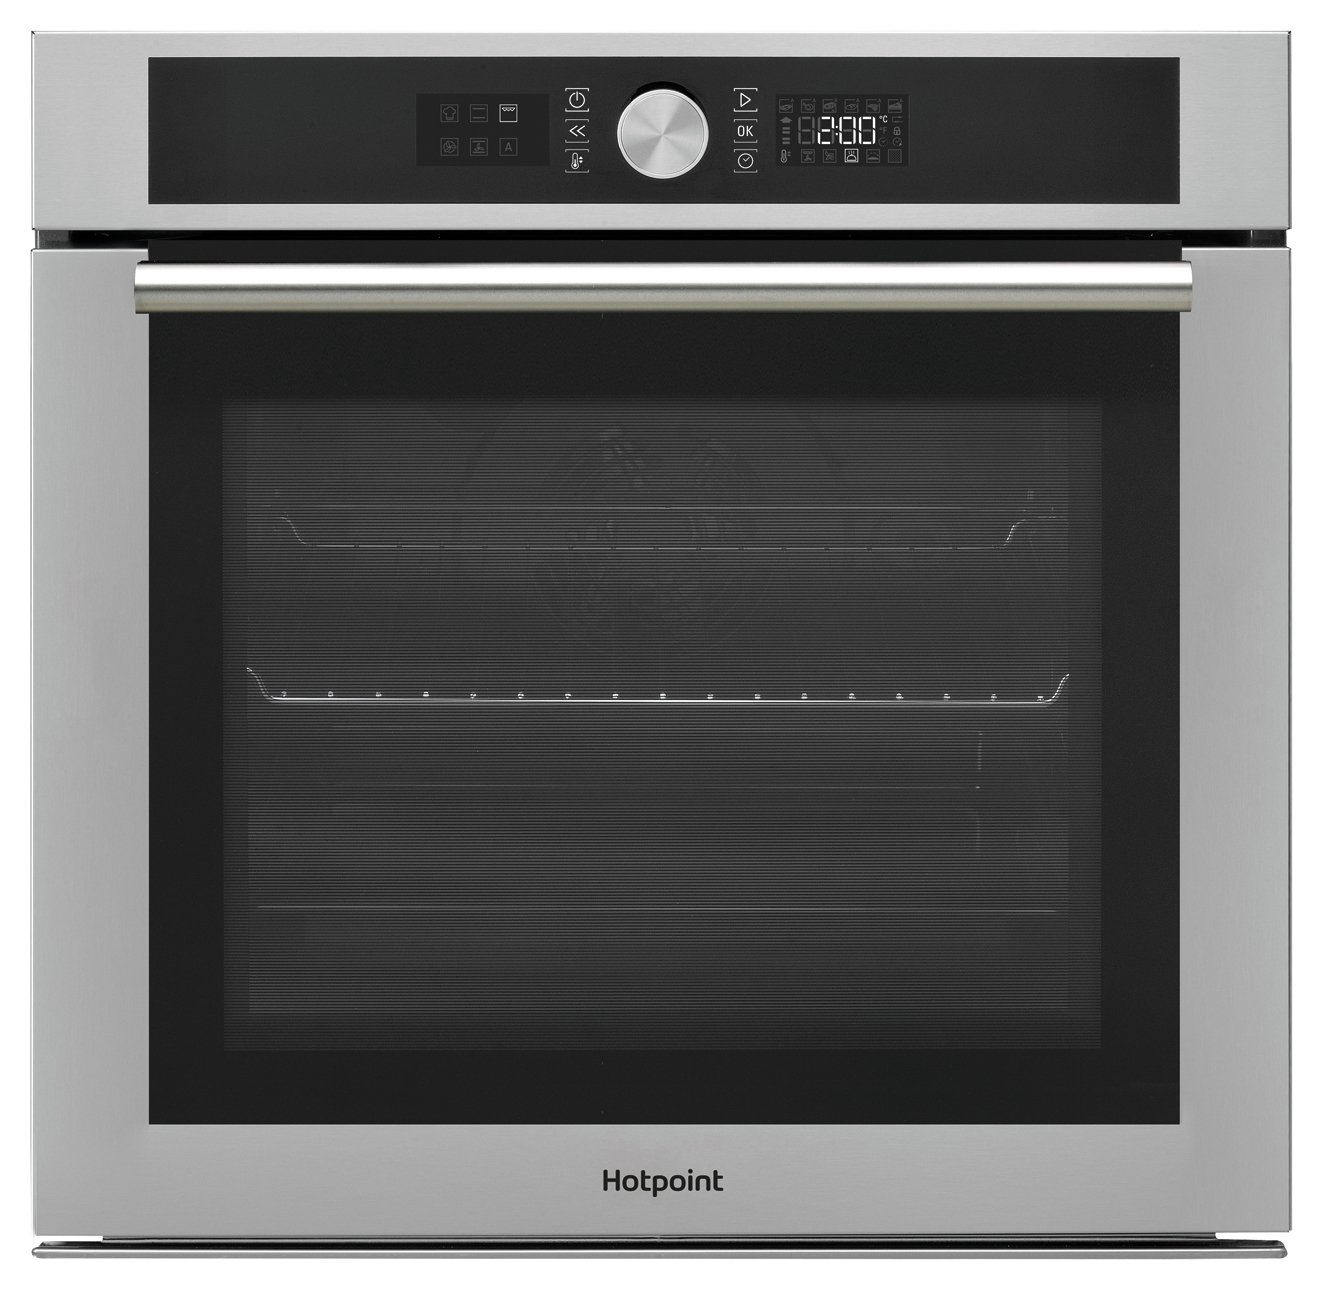 Hotpoint SI4 854 H IX Built-In Single Oven - Stainless Steel